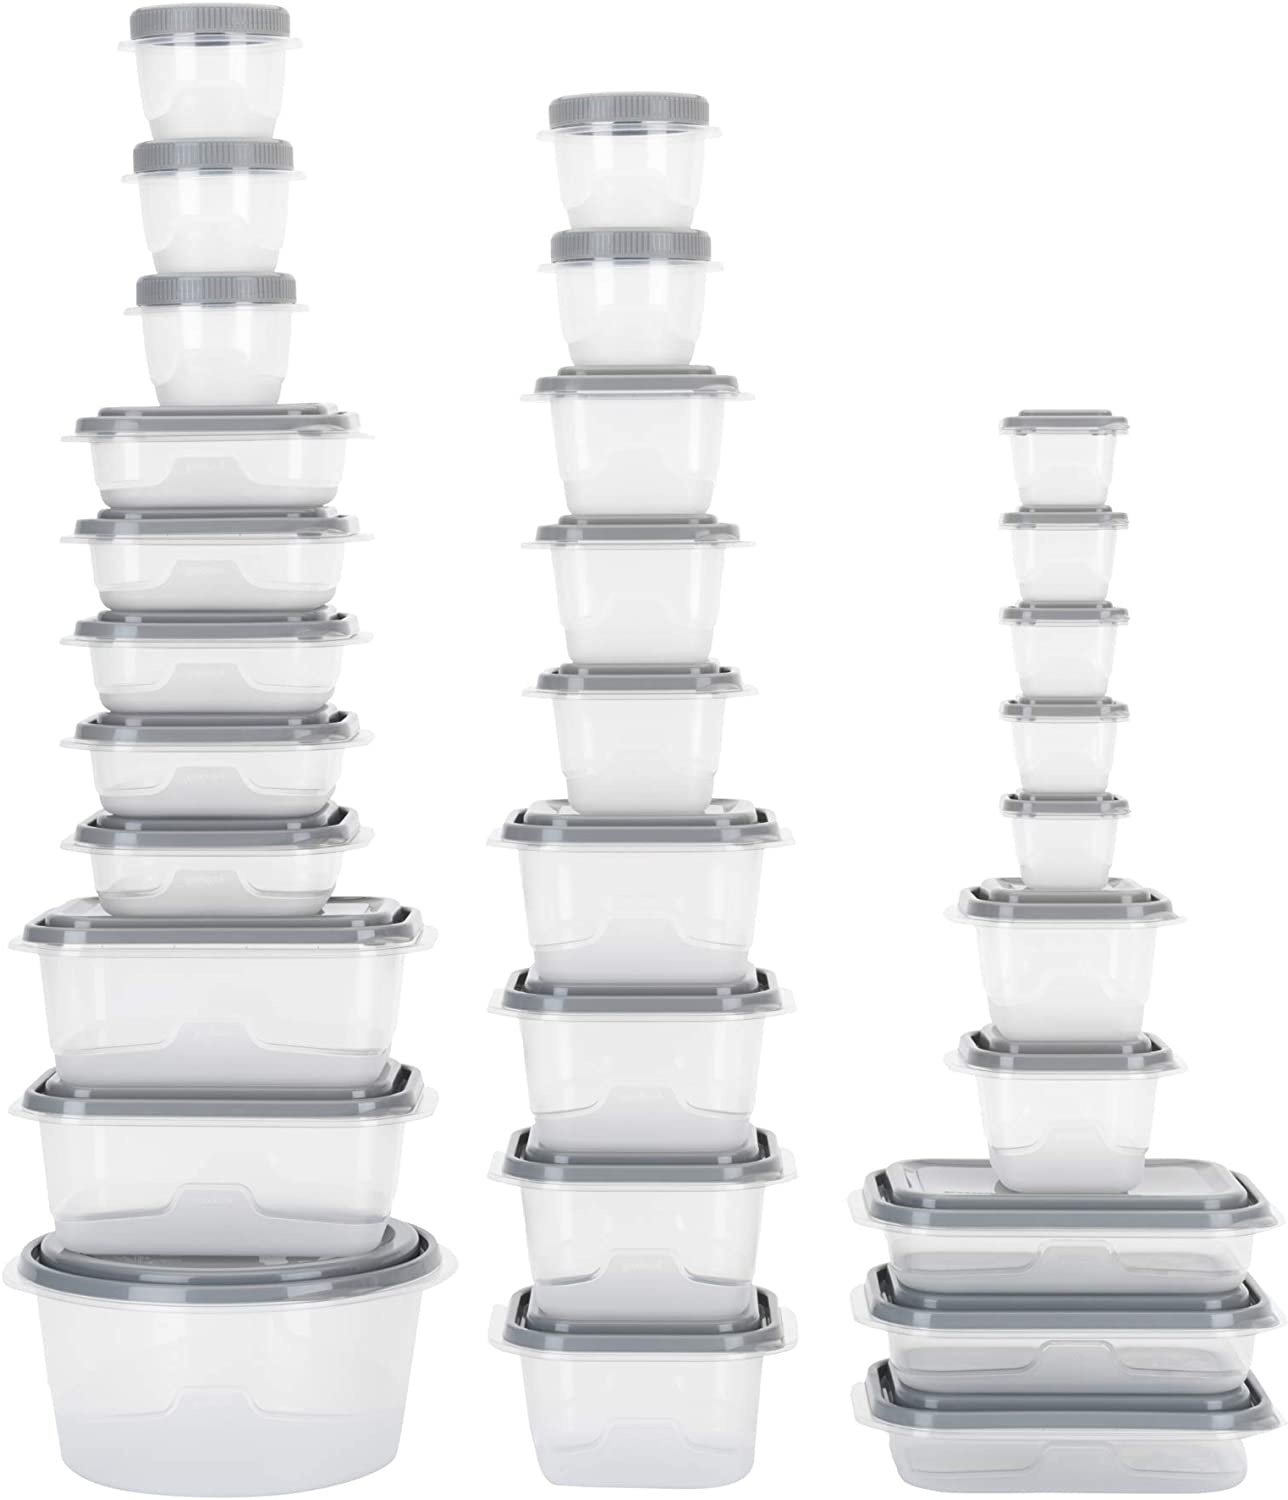 GoodCook EveryWare 60-Piece BPA-Free Plastic Food Storage Container Set, Clear/Grey